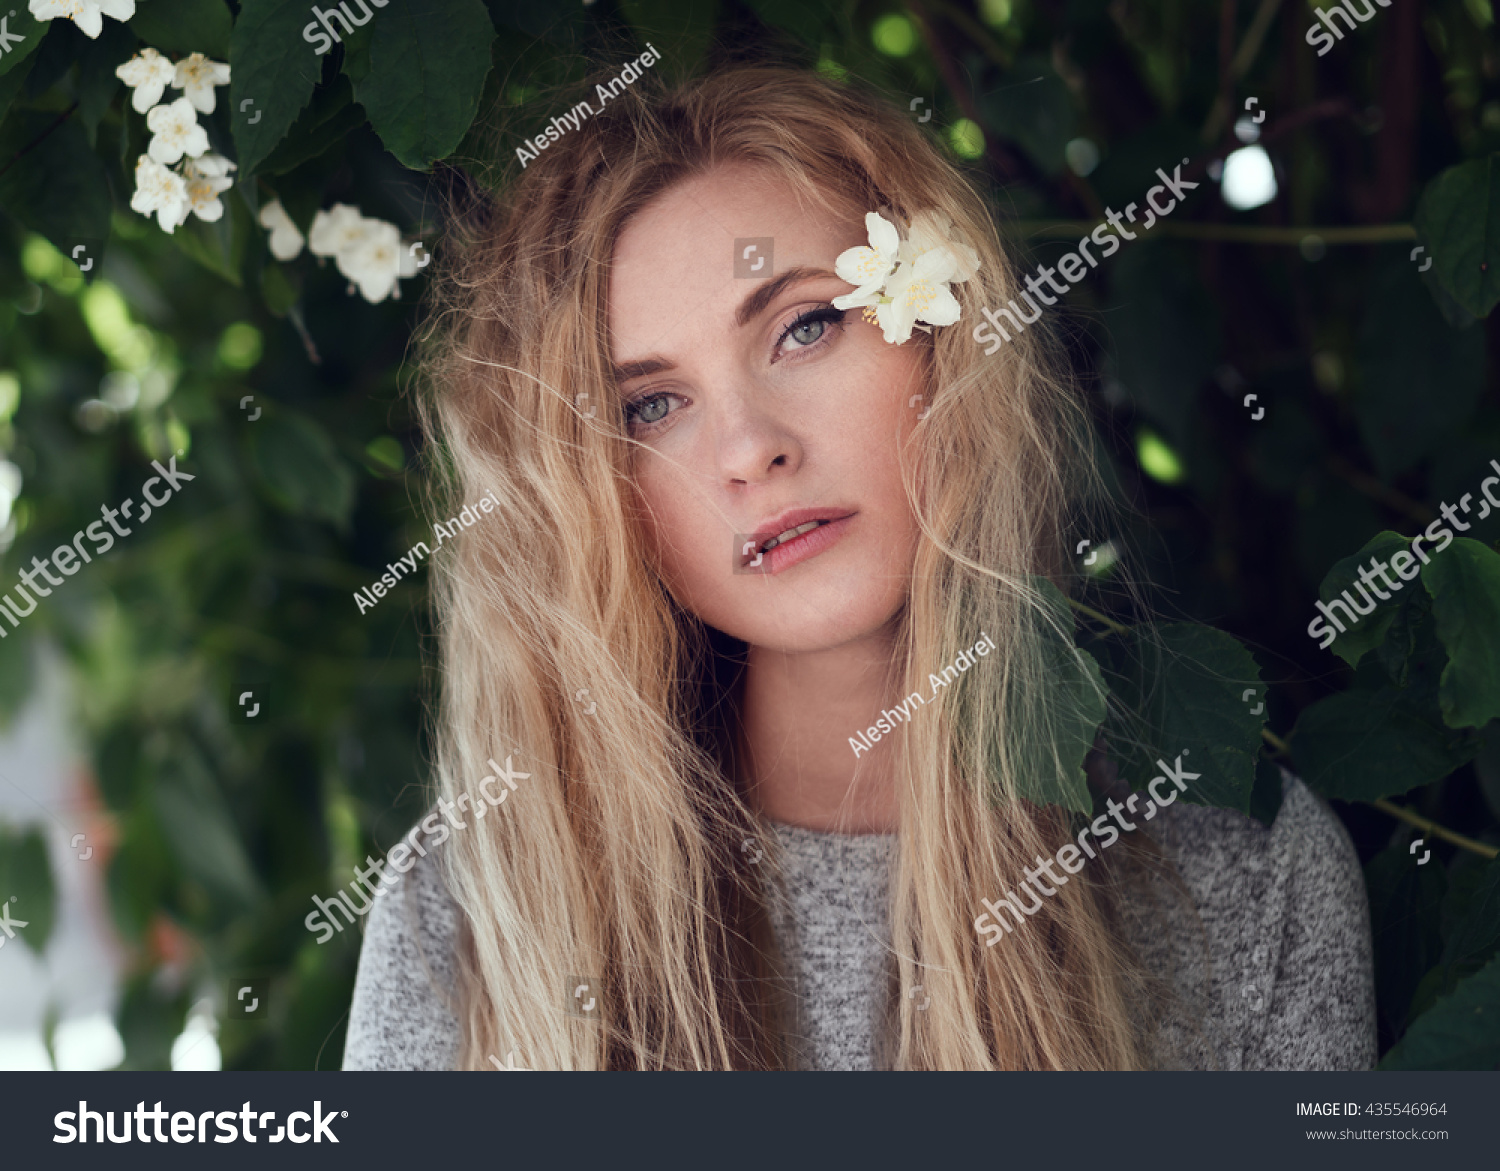 portrait sweet young girl closeup city stock photo & image (royalty